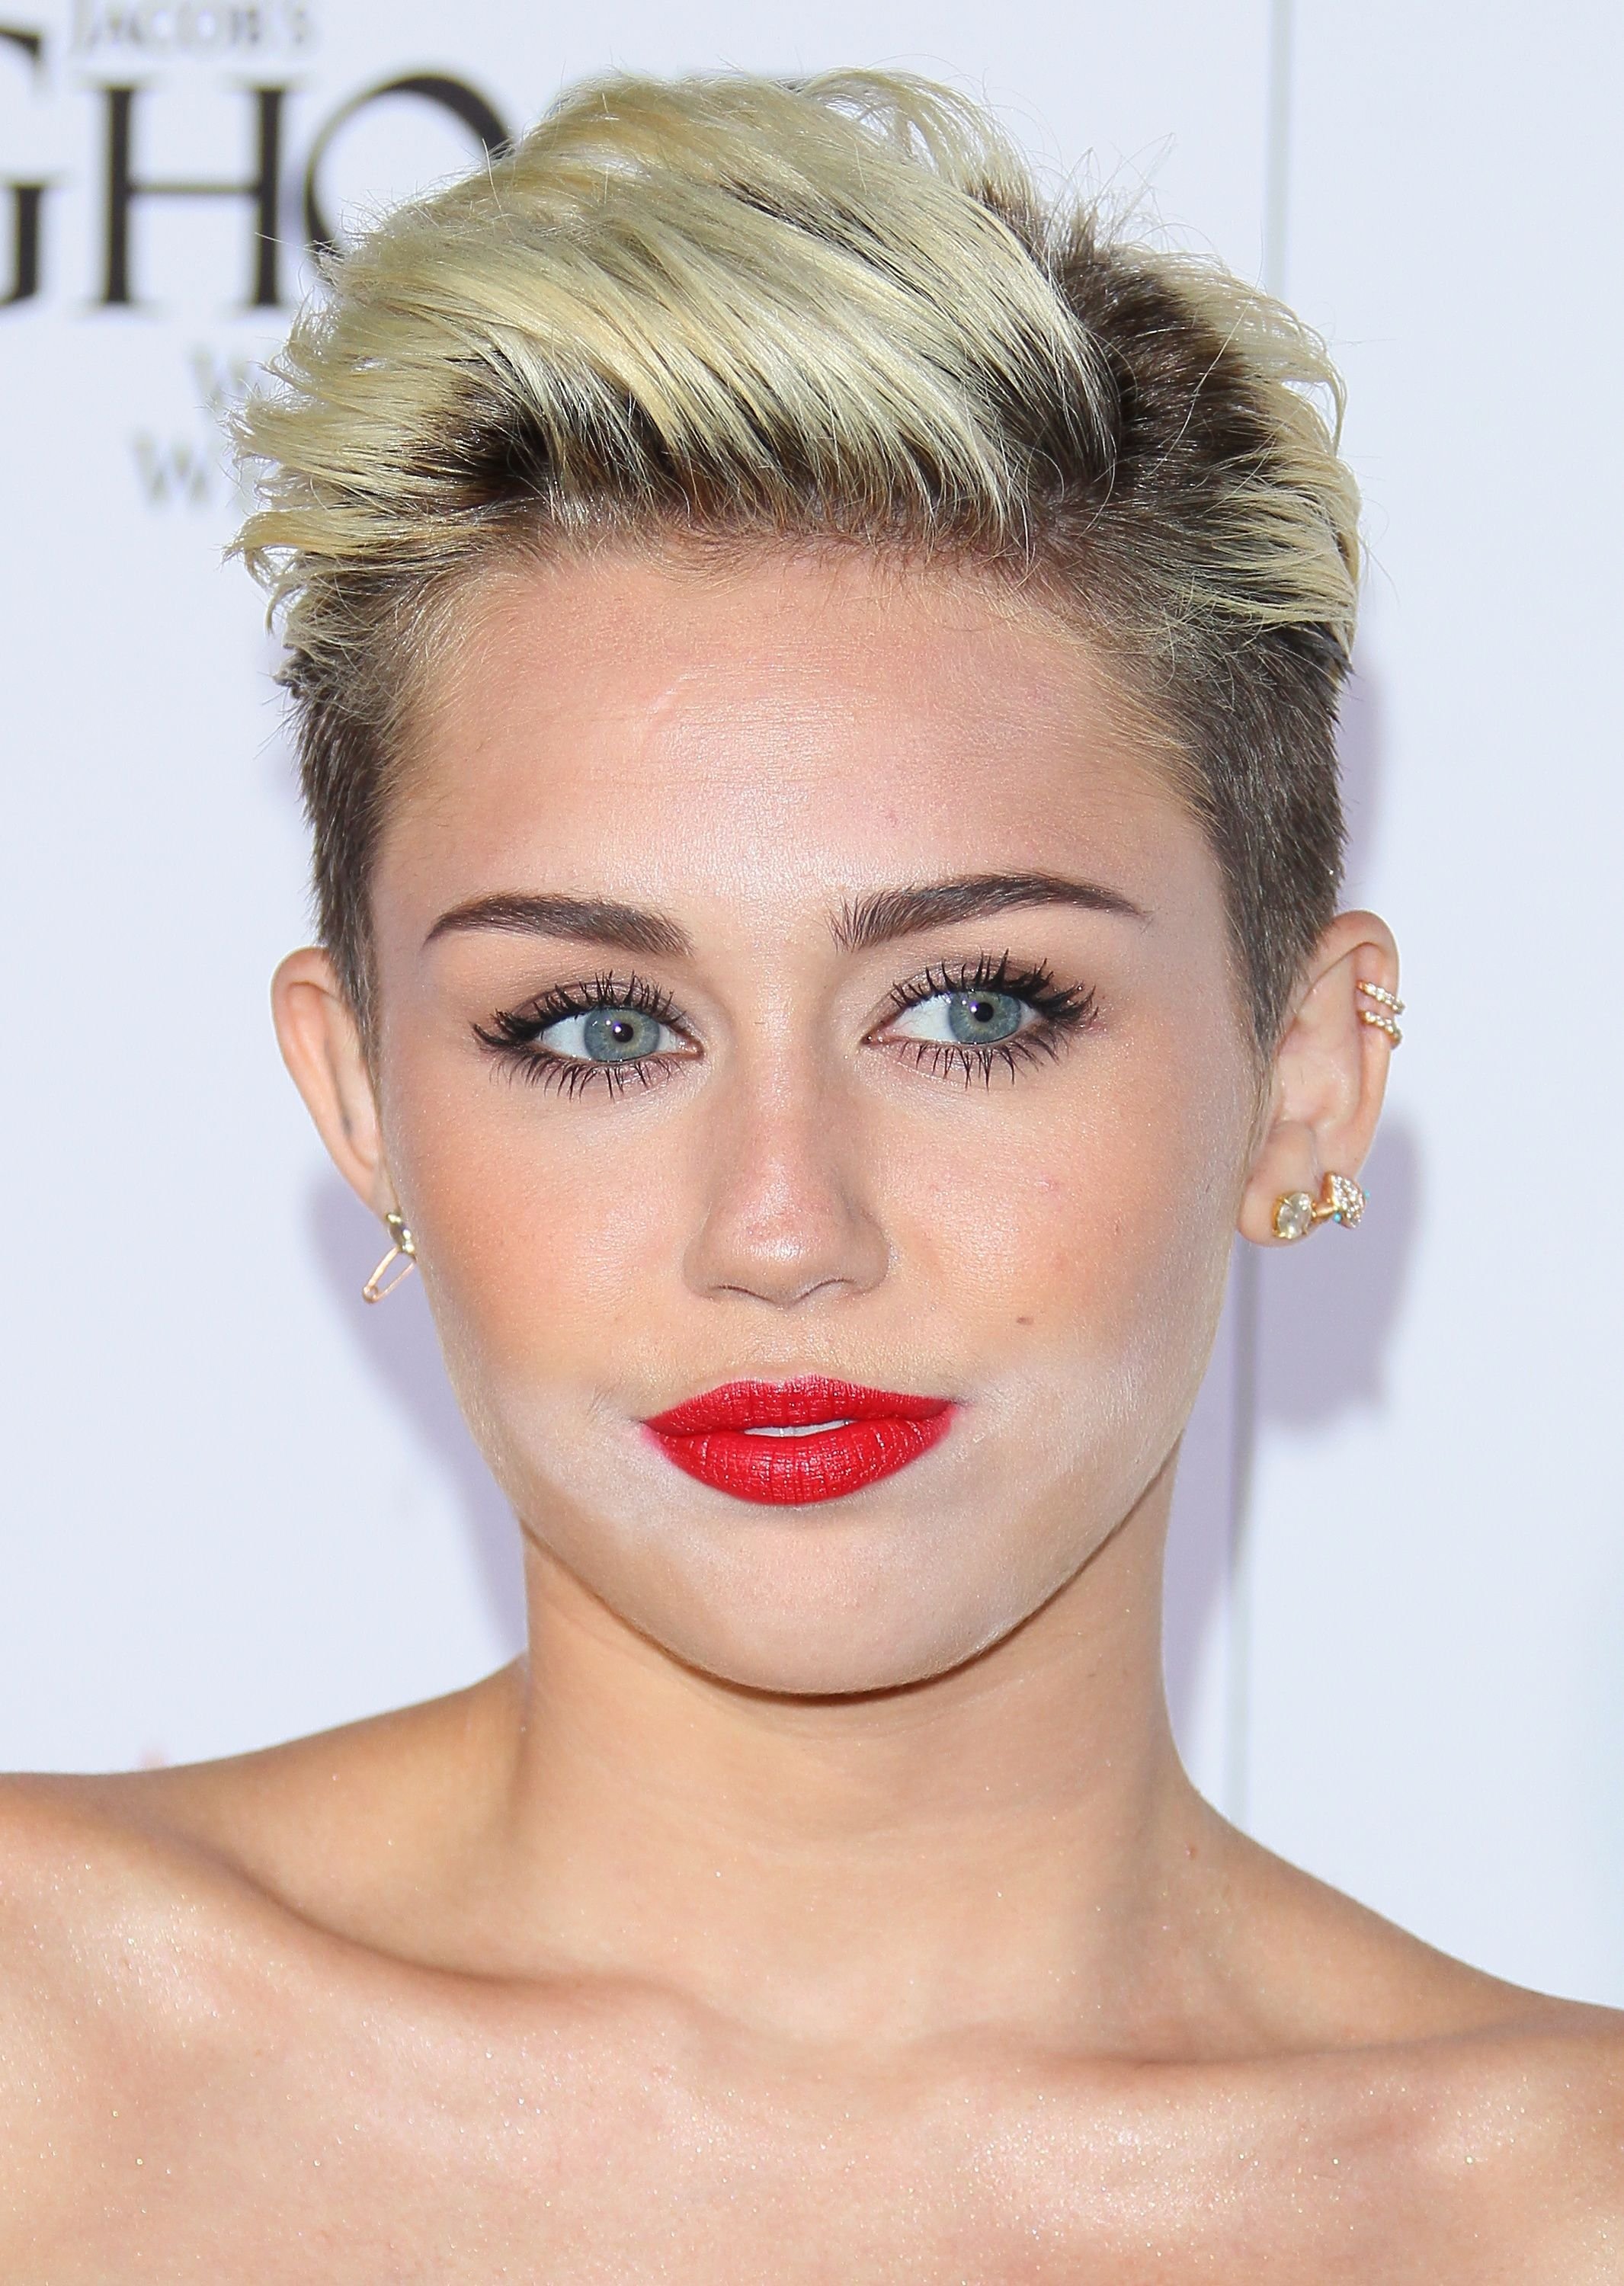 10 Makeup Mistakes Even Celebrities Make pictures